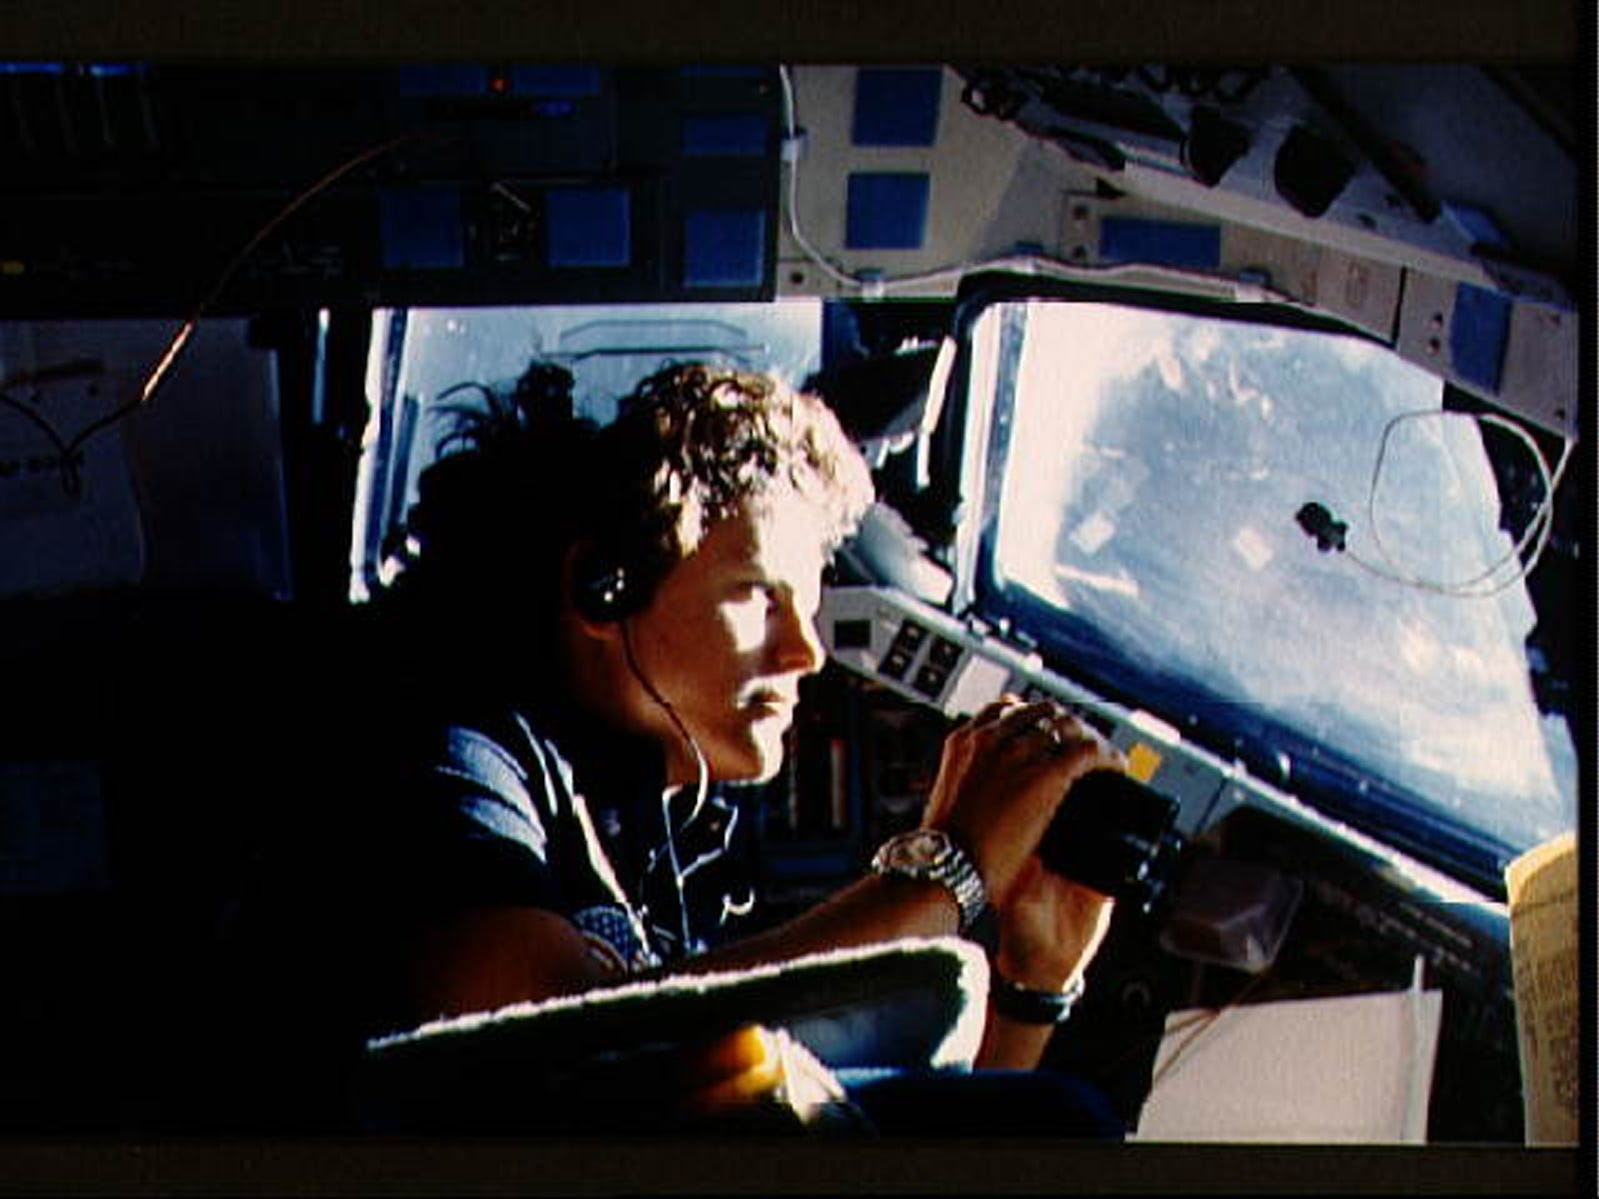 Astronaut Kathryn D. Sullivan, 41-G mission specialist, uses binoculars for a magnifed viewing of earth through the forward cabin windows in 1984. Dr. Kathy Sullivan is the first American woman to walk in space aboard shuttle mission STS-41G.